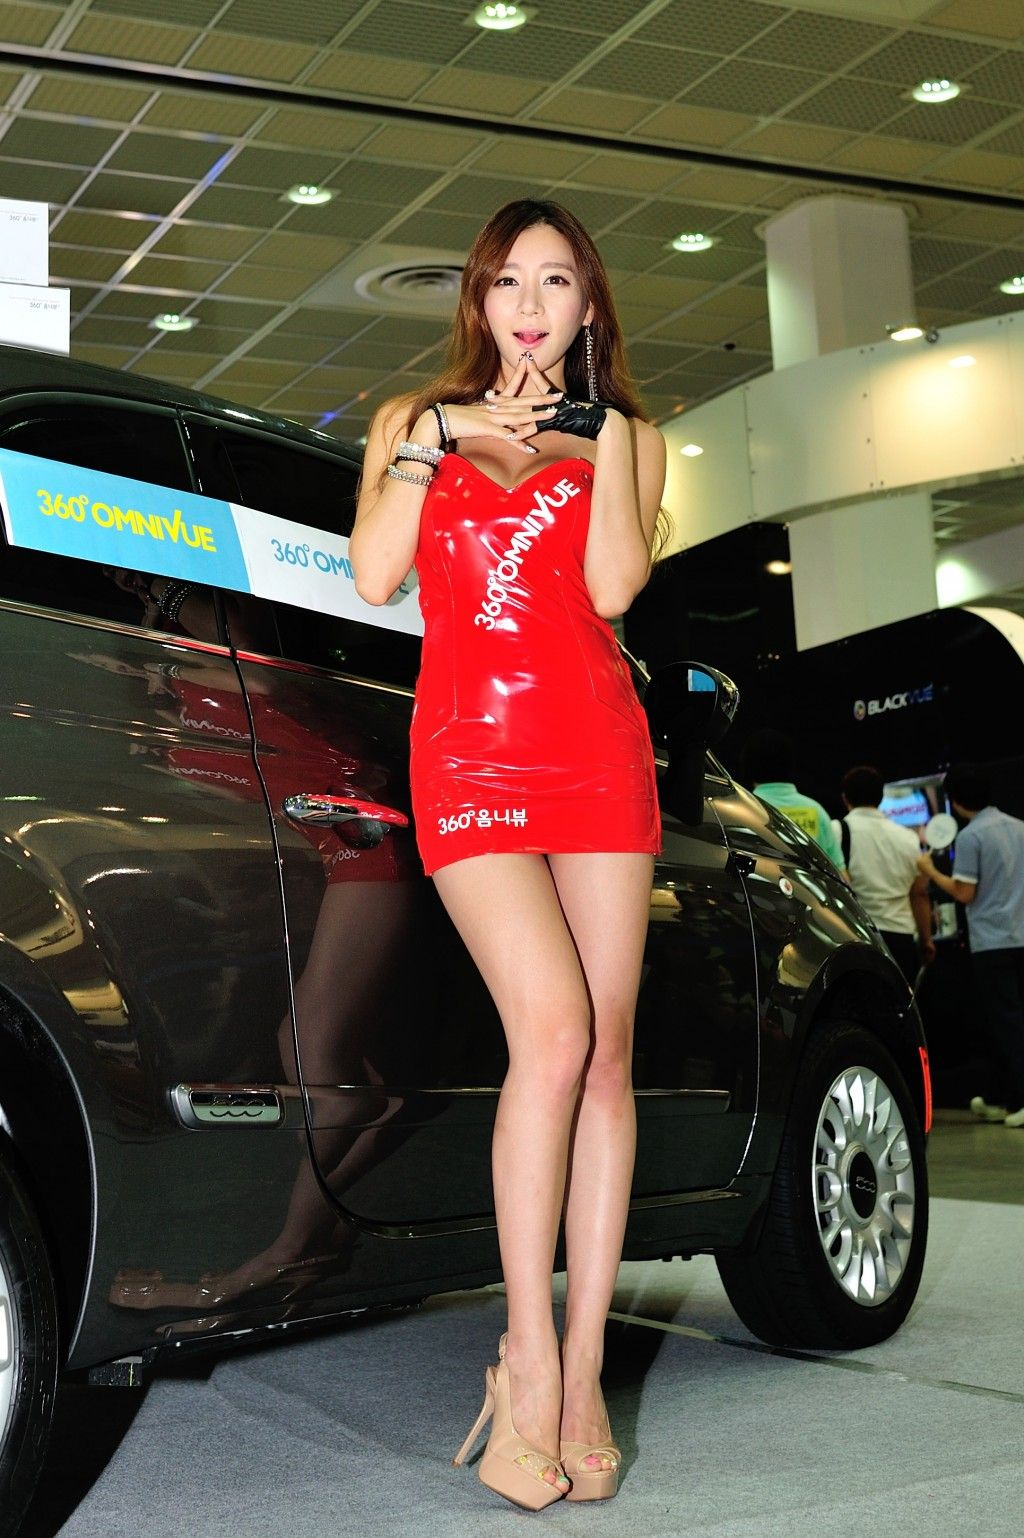 stack-porn-asian-car-show-models-flirting-swinger